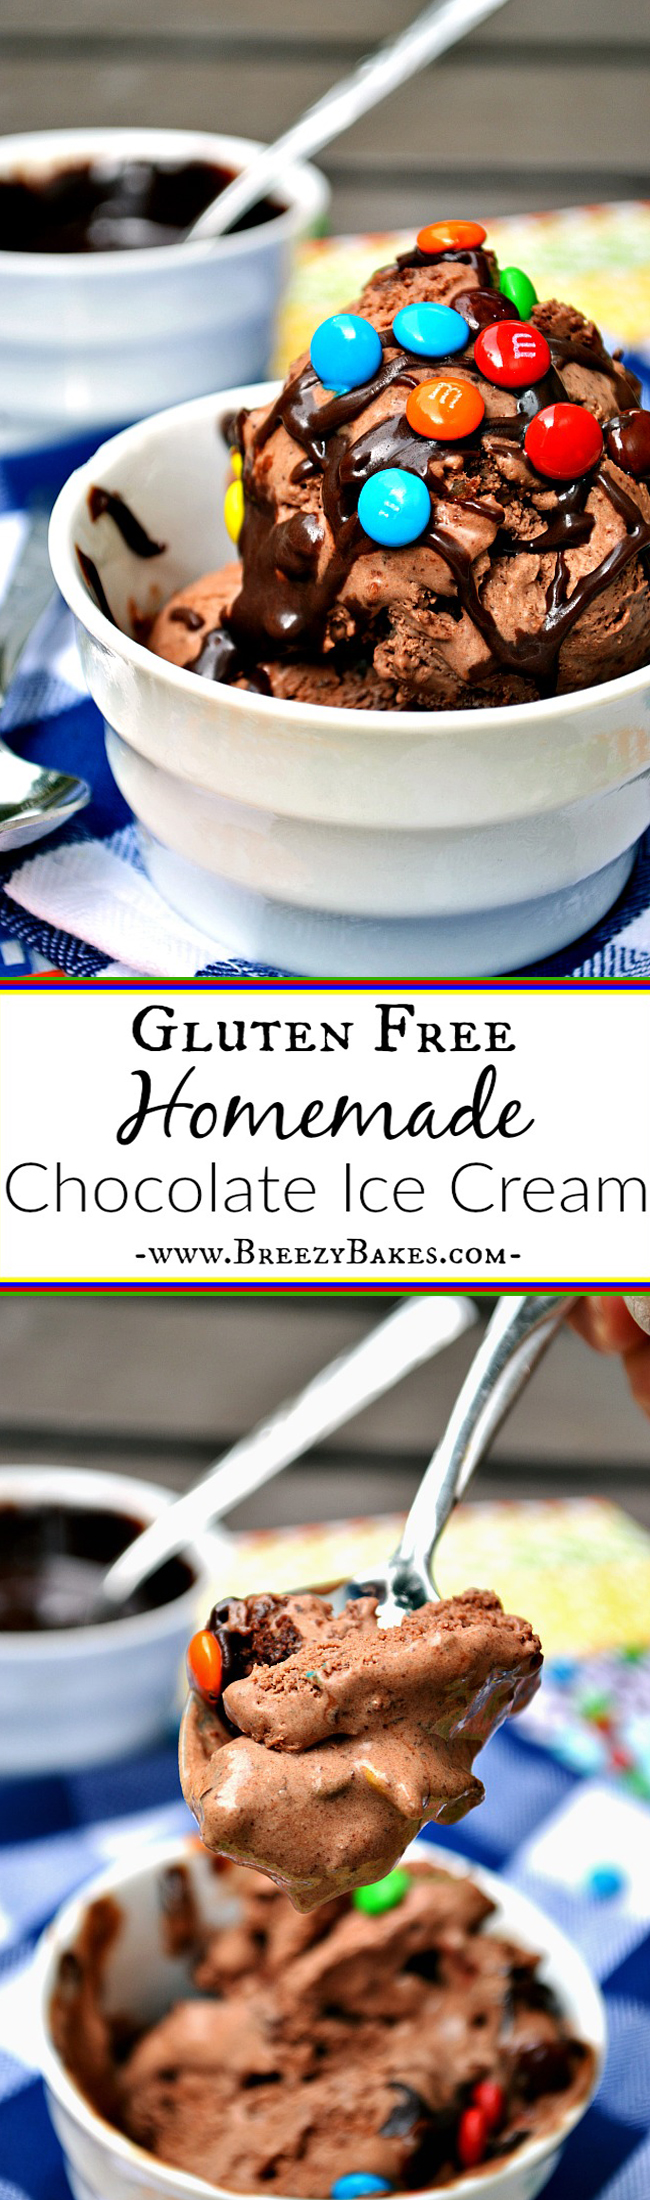 Make a refreshing batch of this rich and chocolaty Gluten Free Basic Chocolate Ice Cream. Dress it up with your favorite toppings and mix-ins.